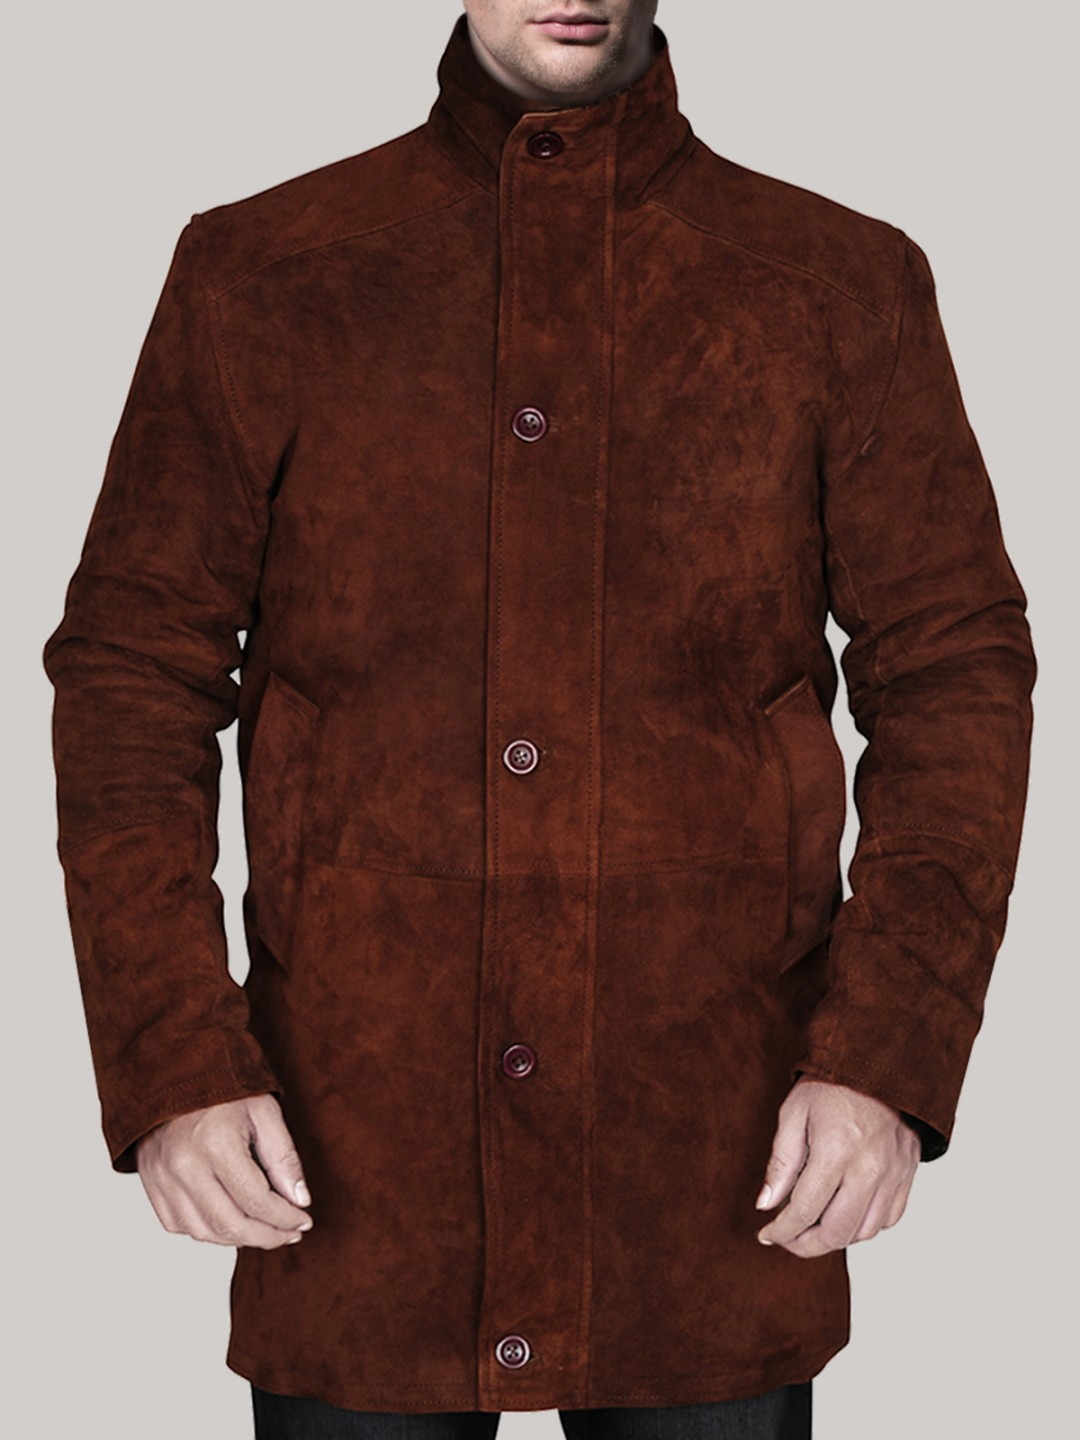 Men?s Brown Suede Leather Coat - Samish Leather